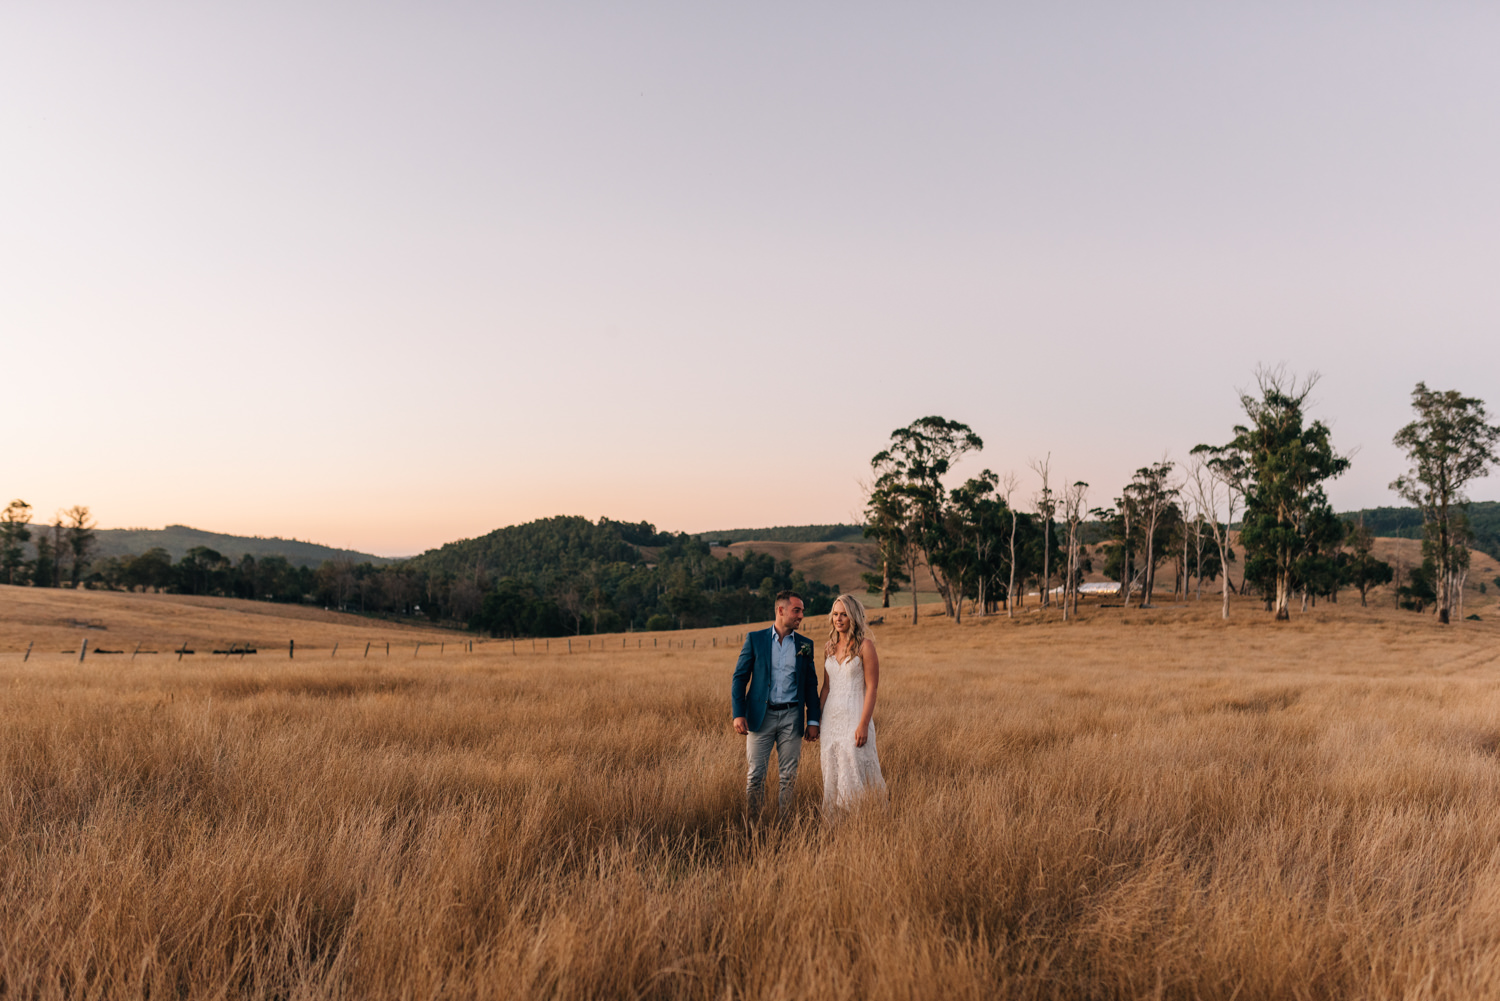 Launceston-Wedding-Photographer-105.jpg